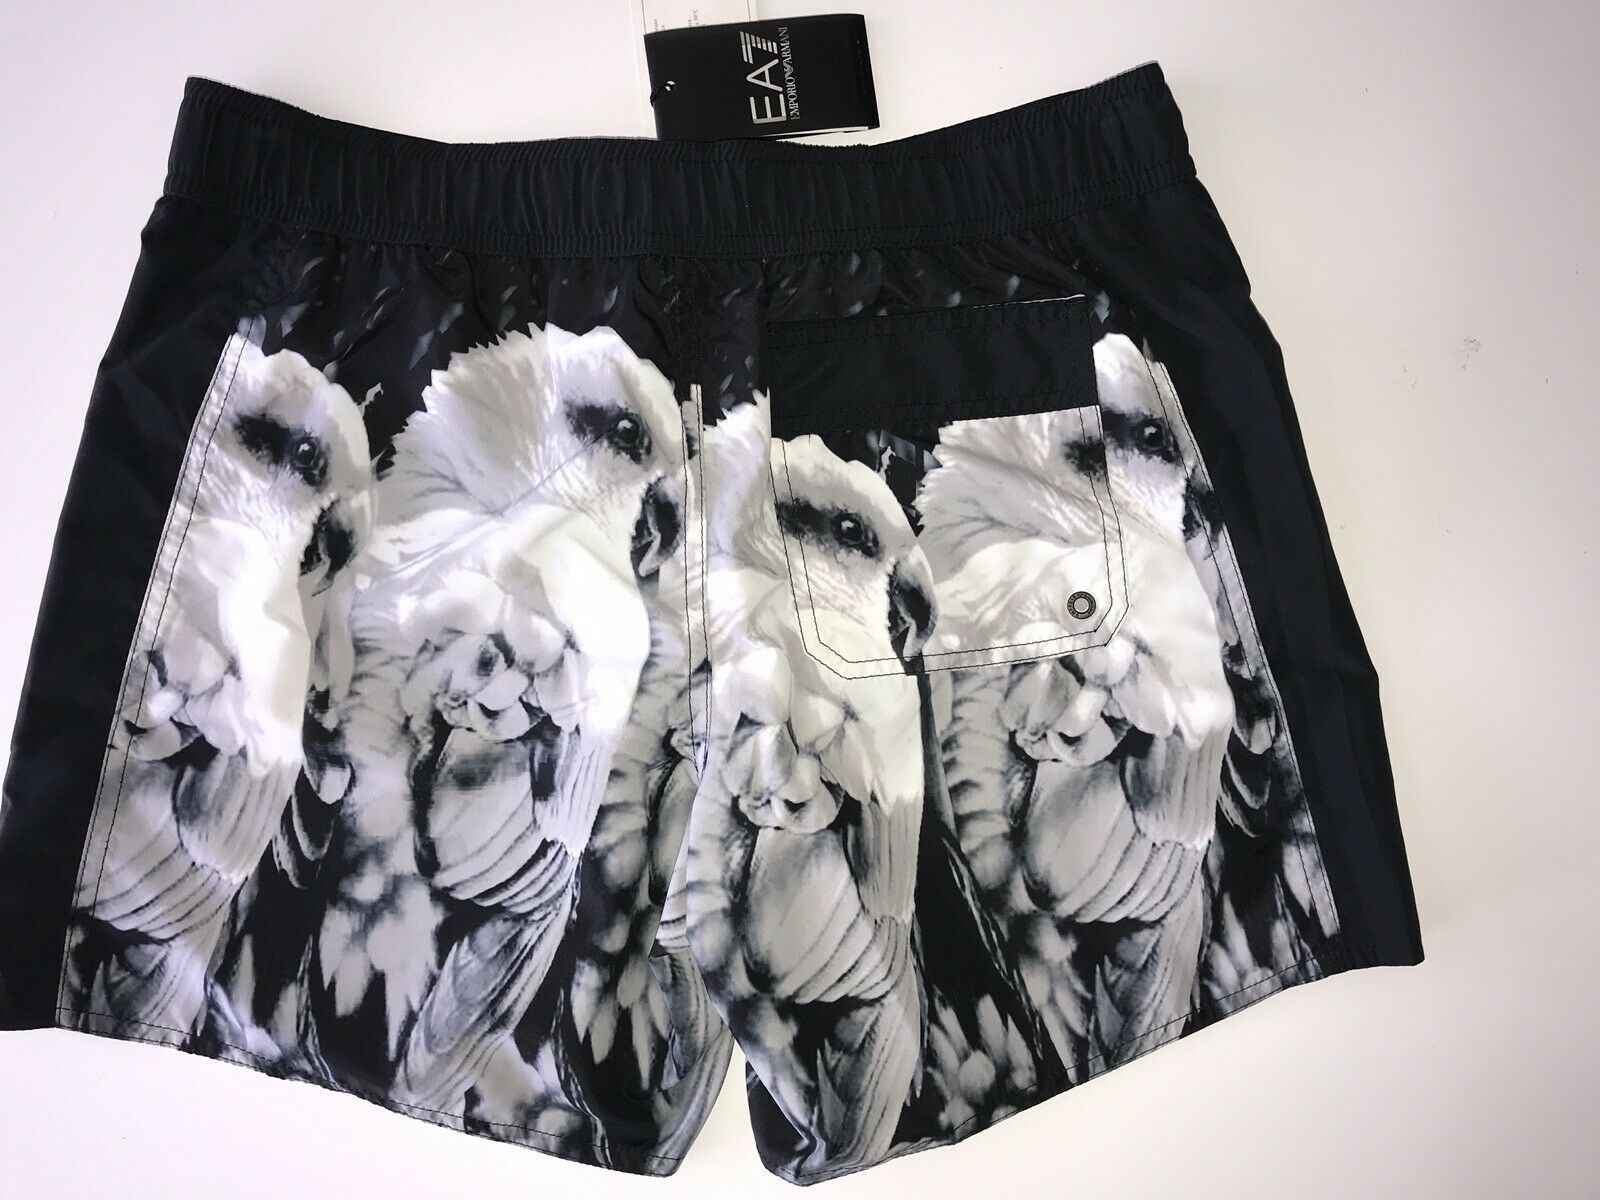 NWT $175 Emporio Armani EA7 Mens Parrots Beach Swim Shorts 48 EU, 32 US (Small)